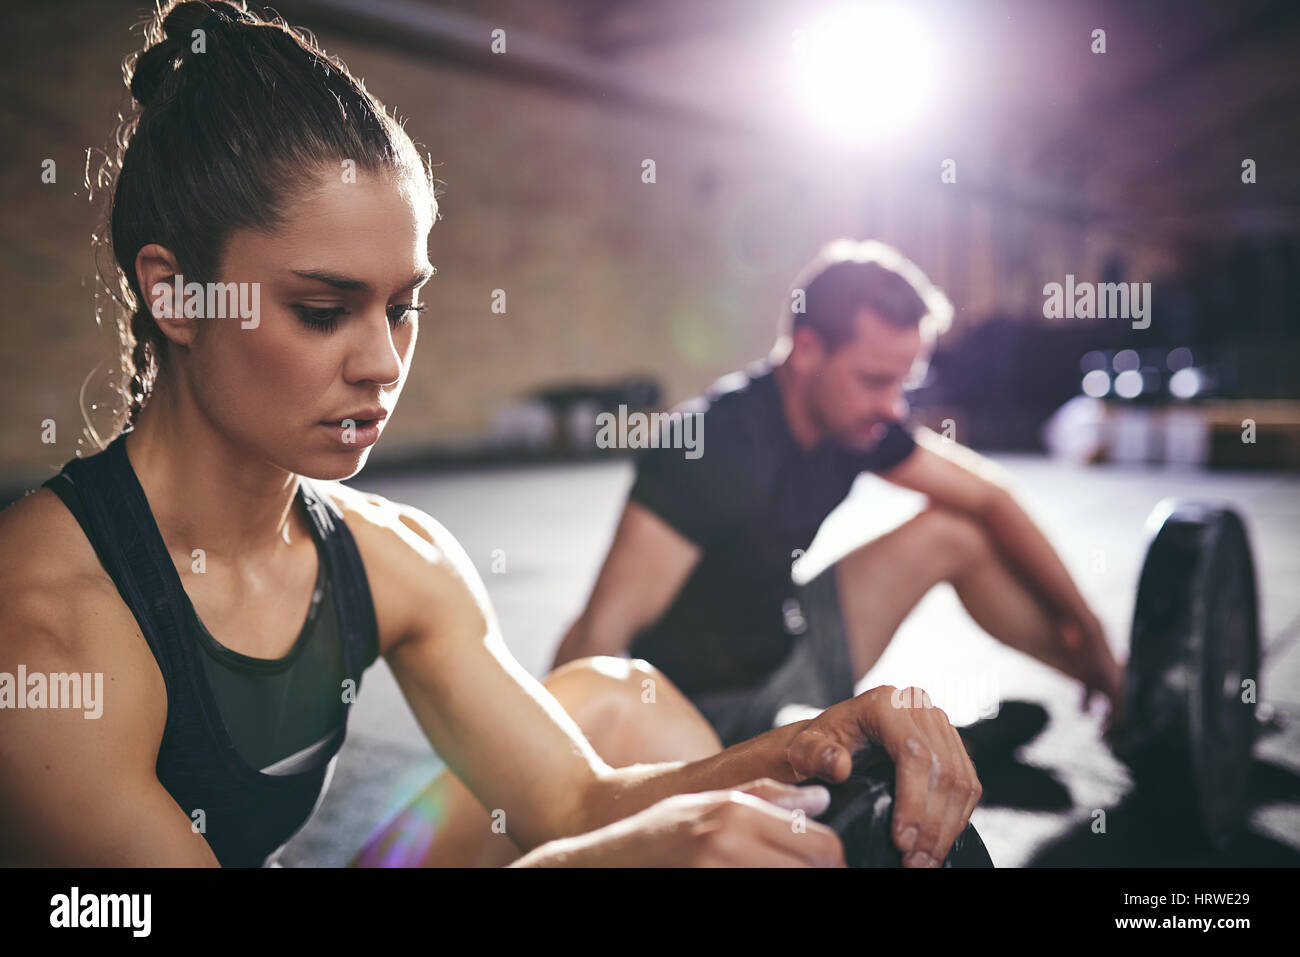 Sportive people sitting and recreating in gym. Horizontal indoors shot - Stock Image